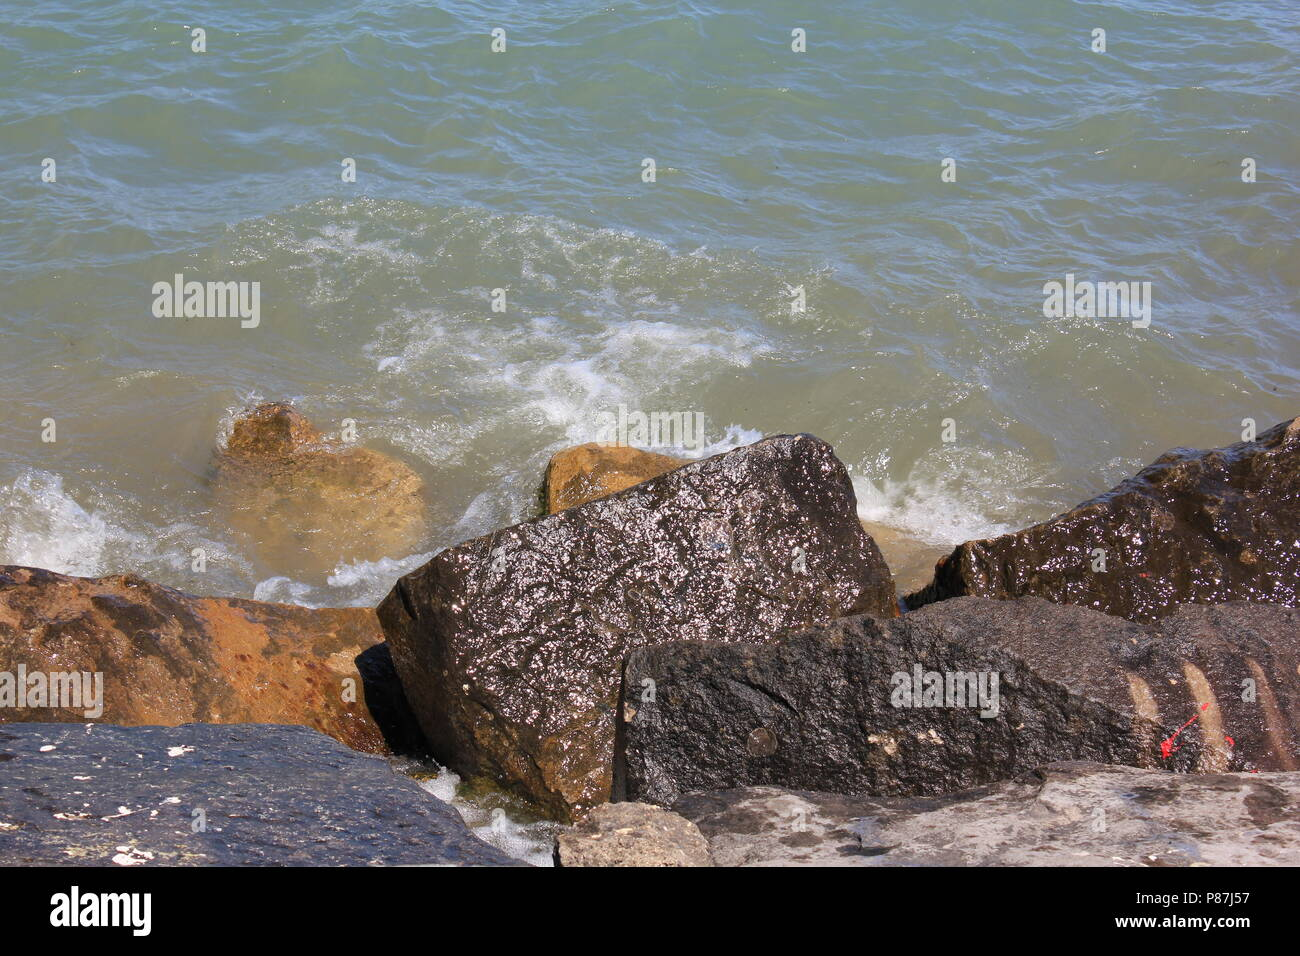 Broken rocks at the lakefront at Northwestern University Park on the Lake in Evanston, Illinois on a beautiful sunny summer day. - Stock Image